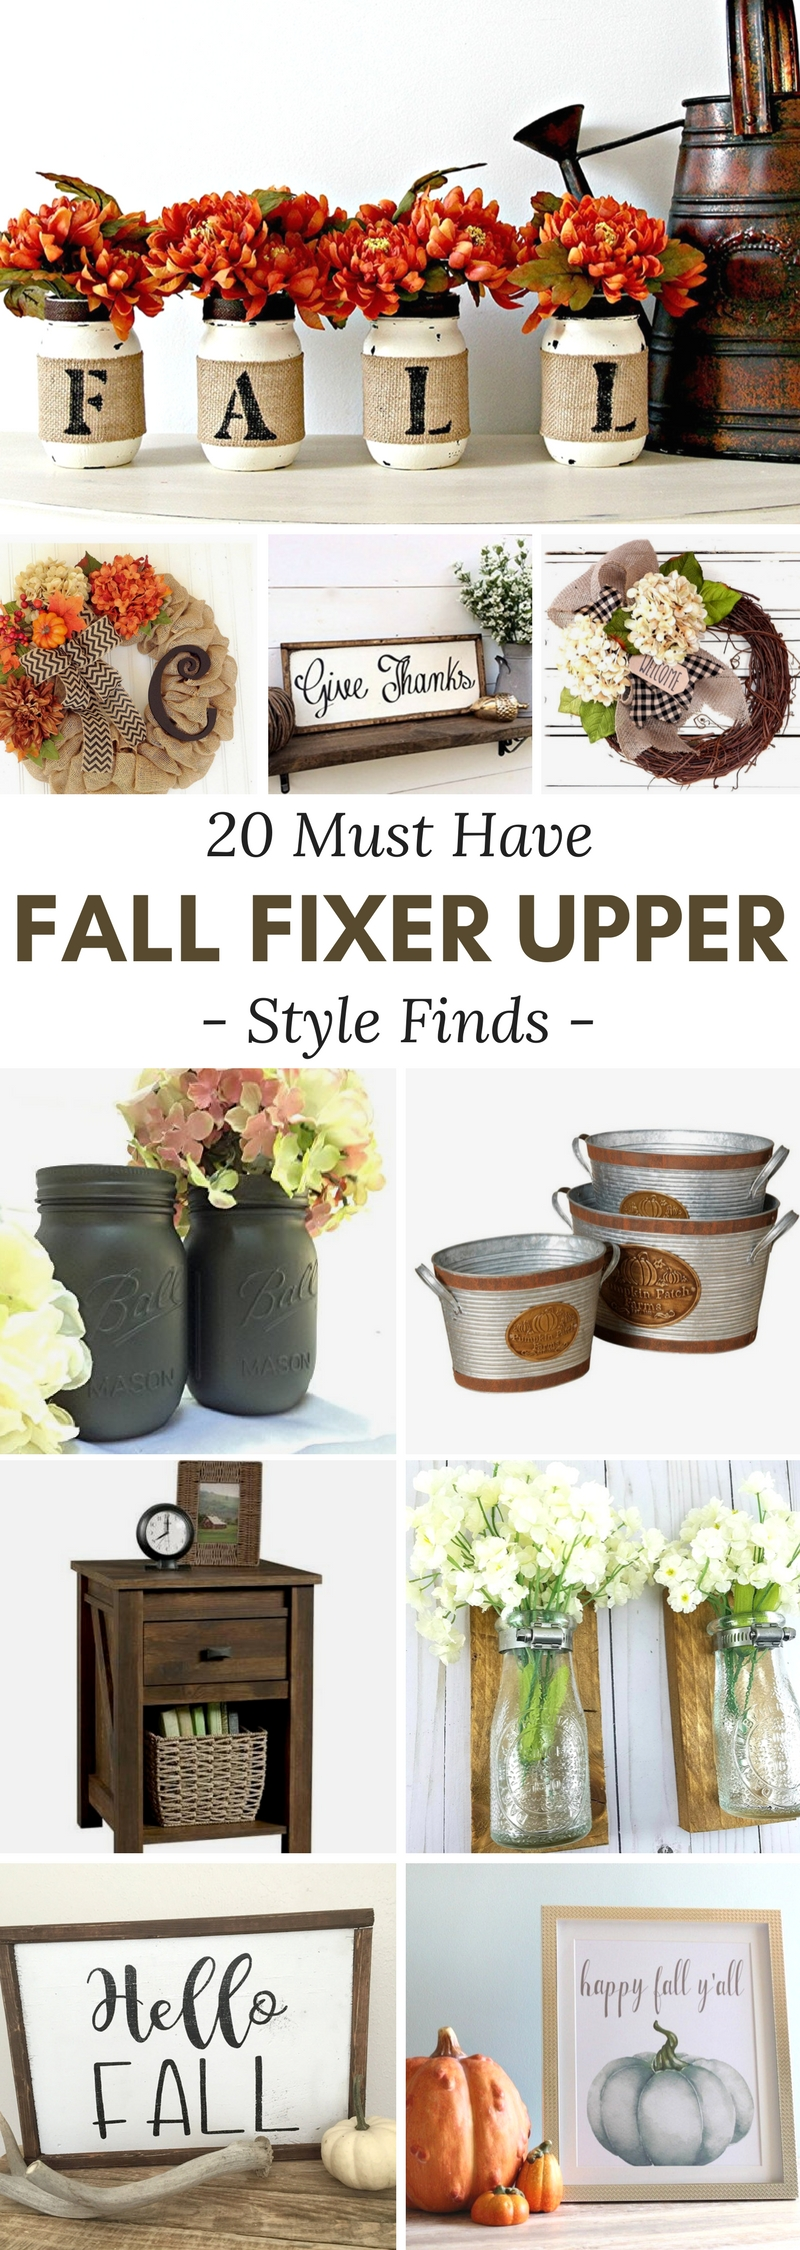 Fall Fixer Upper Style Finds